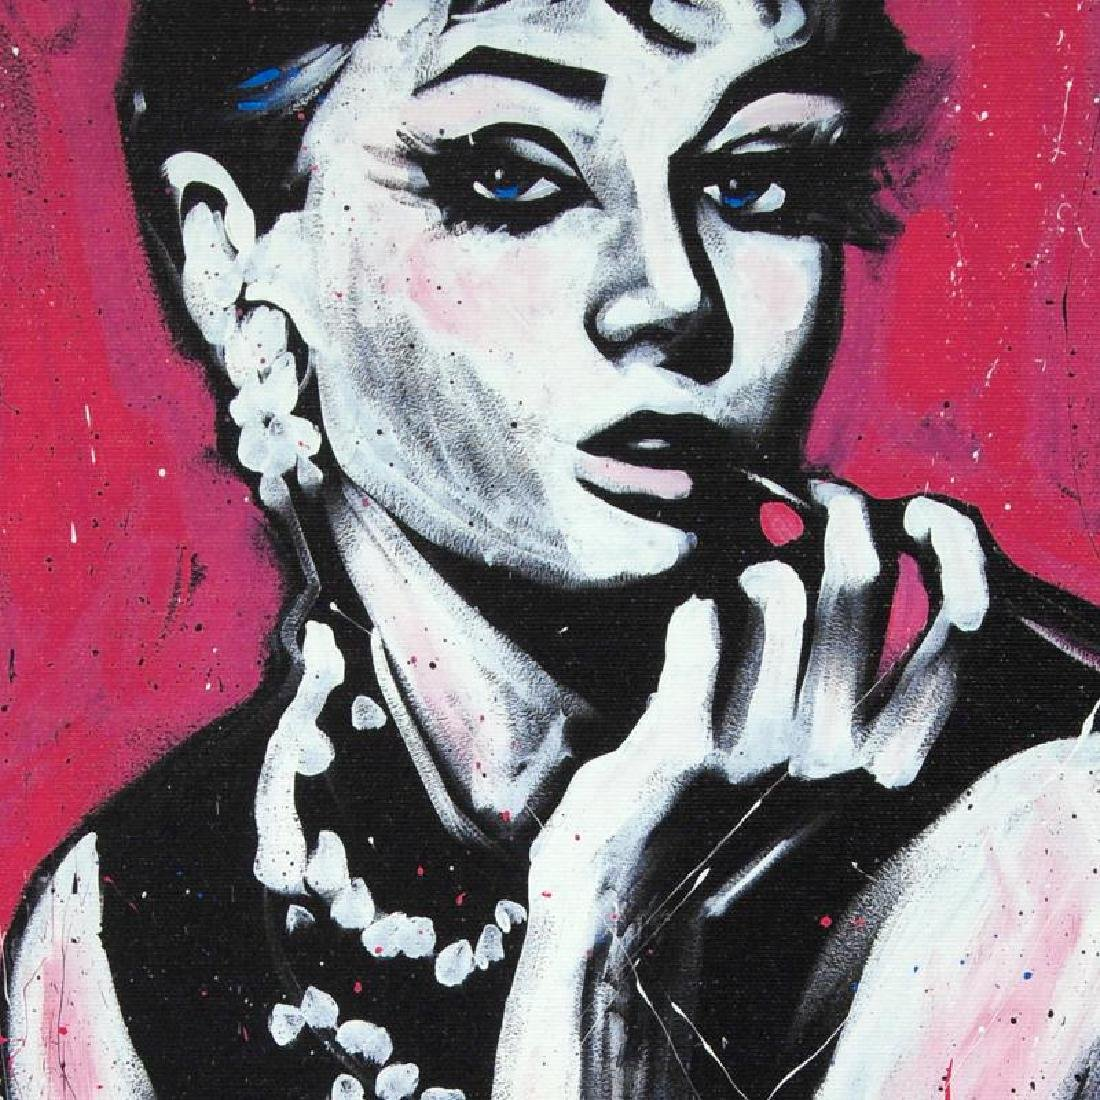 Audrey Hepburn (Fabulous) by Garibaldi, David - 2